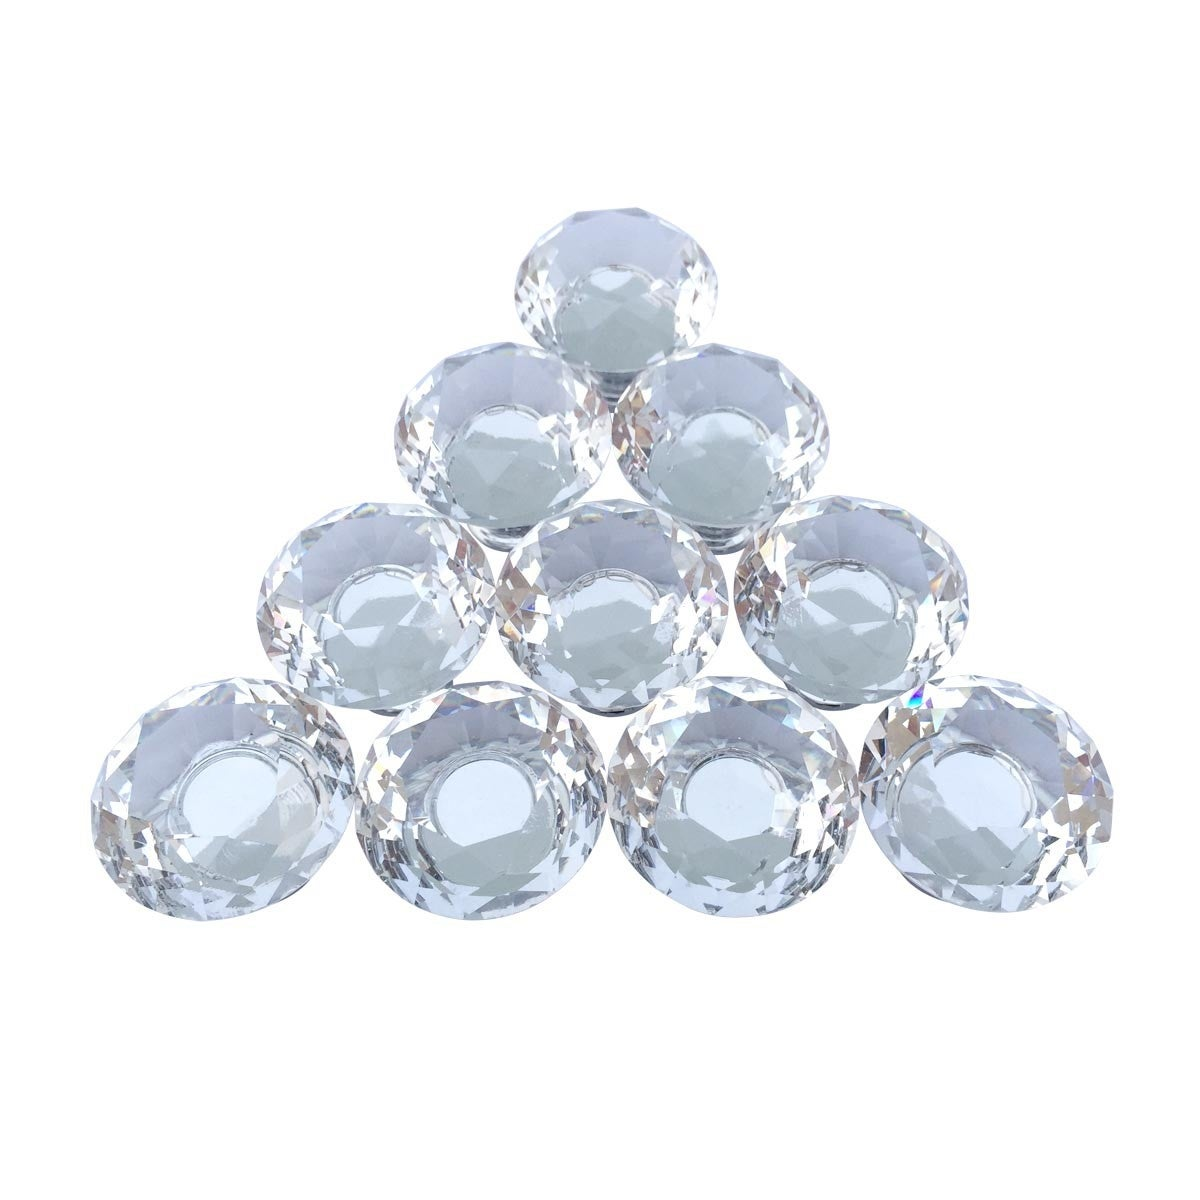 shop clear glass cabinet knobs 1 18 inch diameter mushroom 10 pcs rh overstock com  round clear glass cabinet knobs